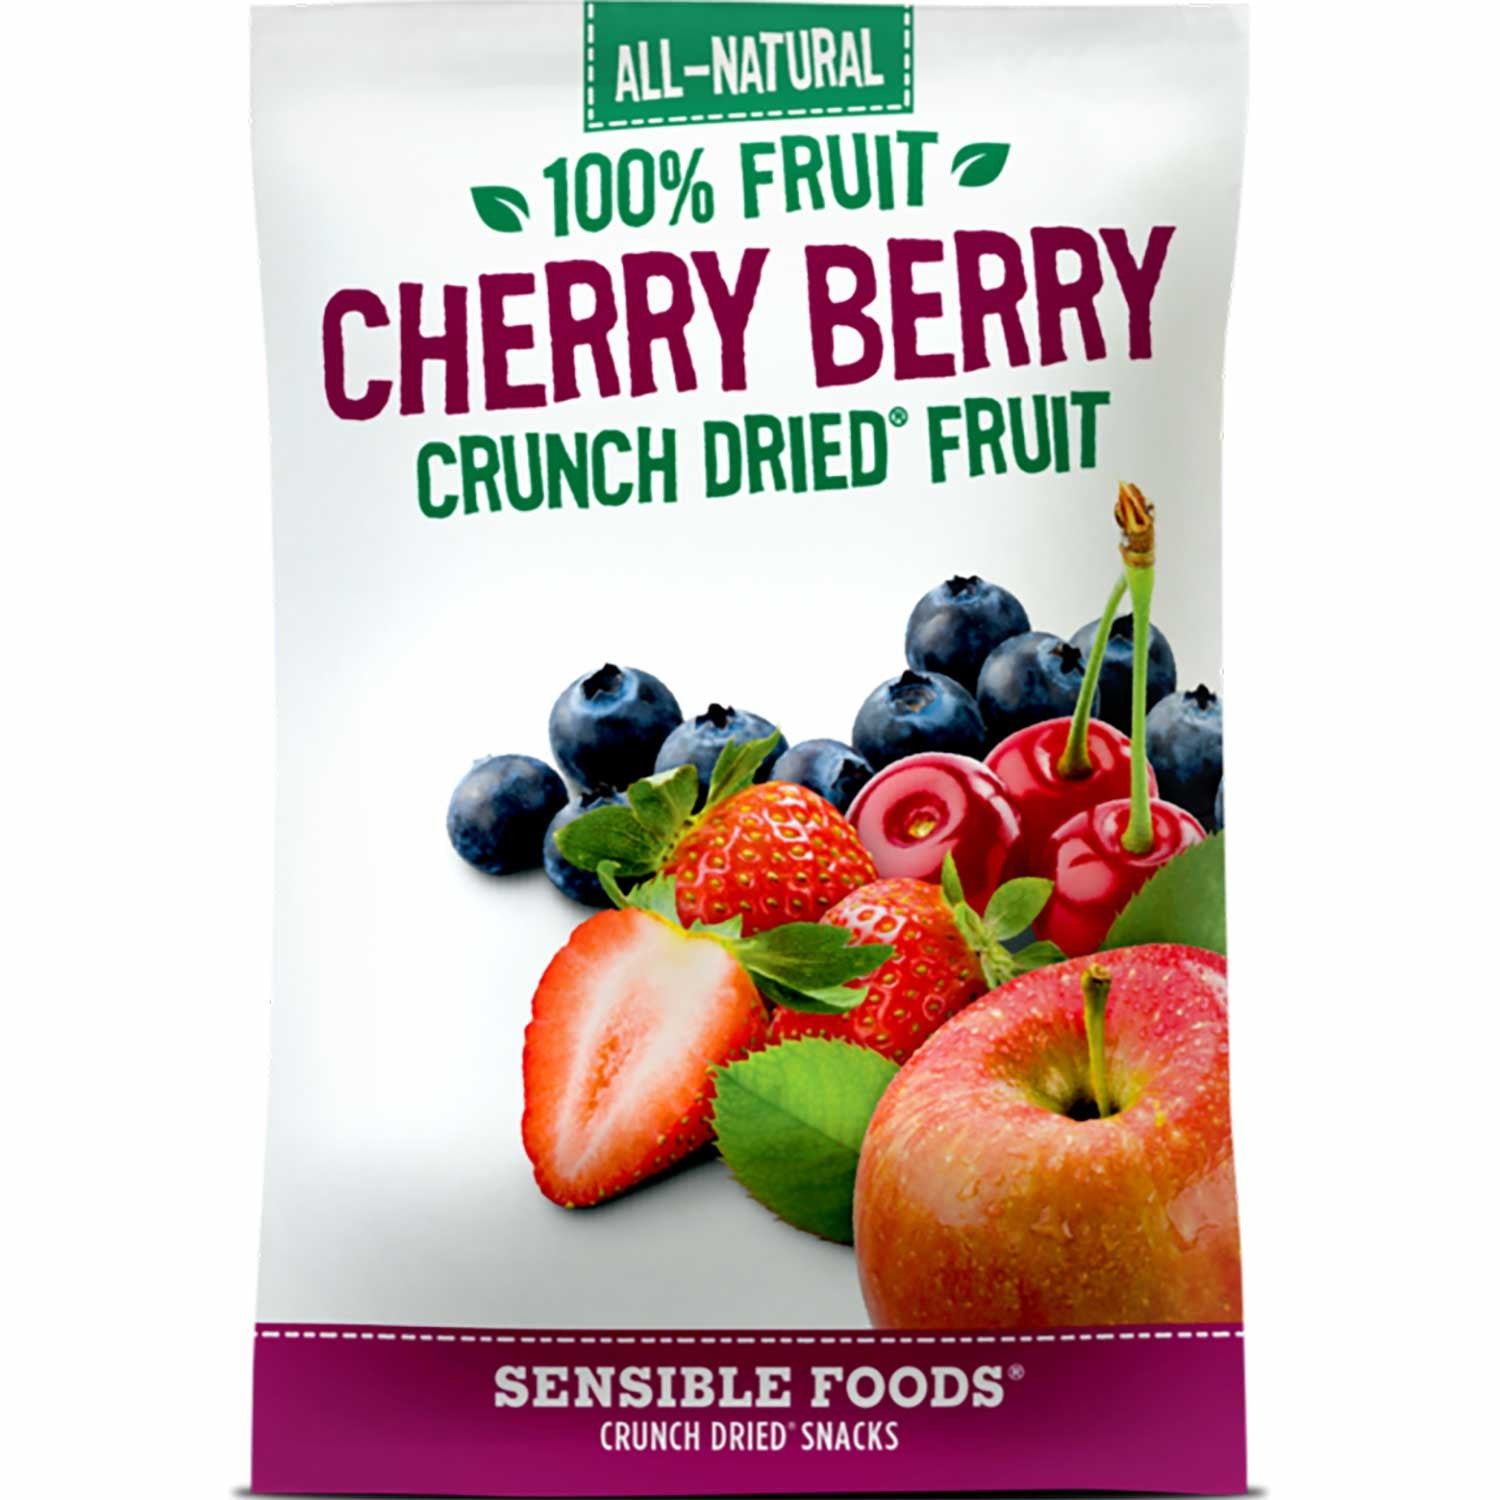 Sensible Foods All-Natural 100% Fruit Cherry Berry Crunch Dried Fruit, 37g.-NaturesWisdom